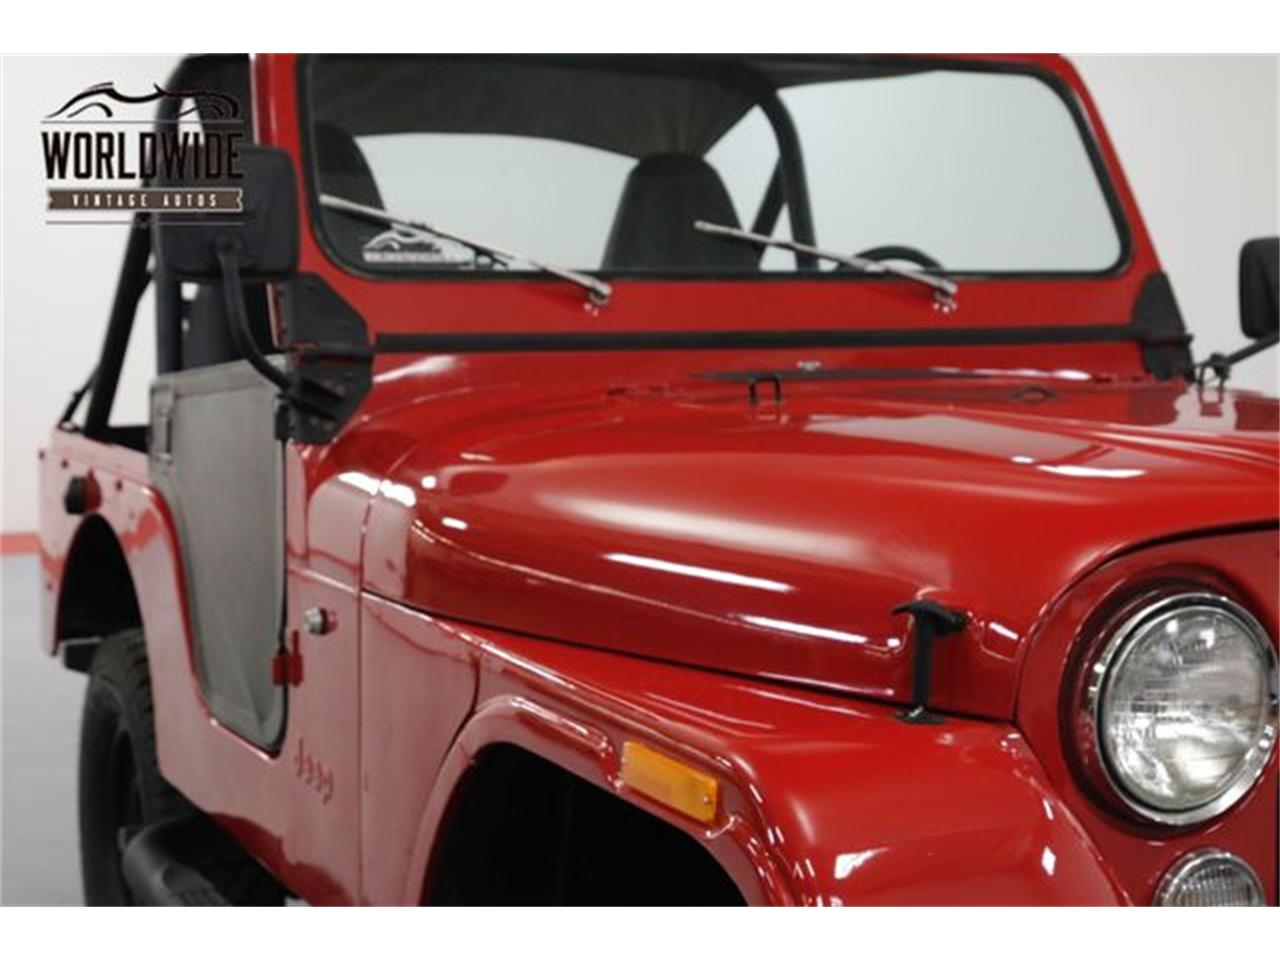 Large Picture of 1979 Jeep CJ5 Offered by Worldwide Vintage Autos - OWHF